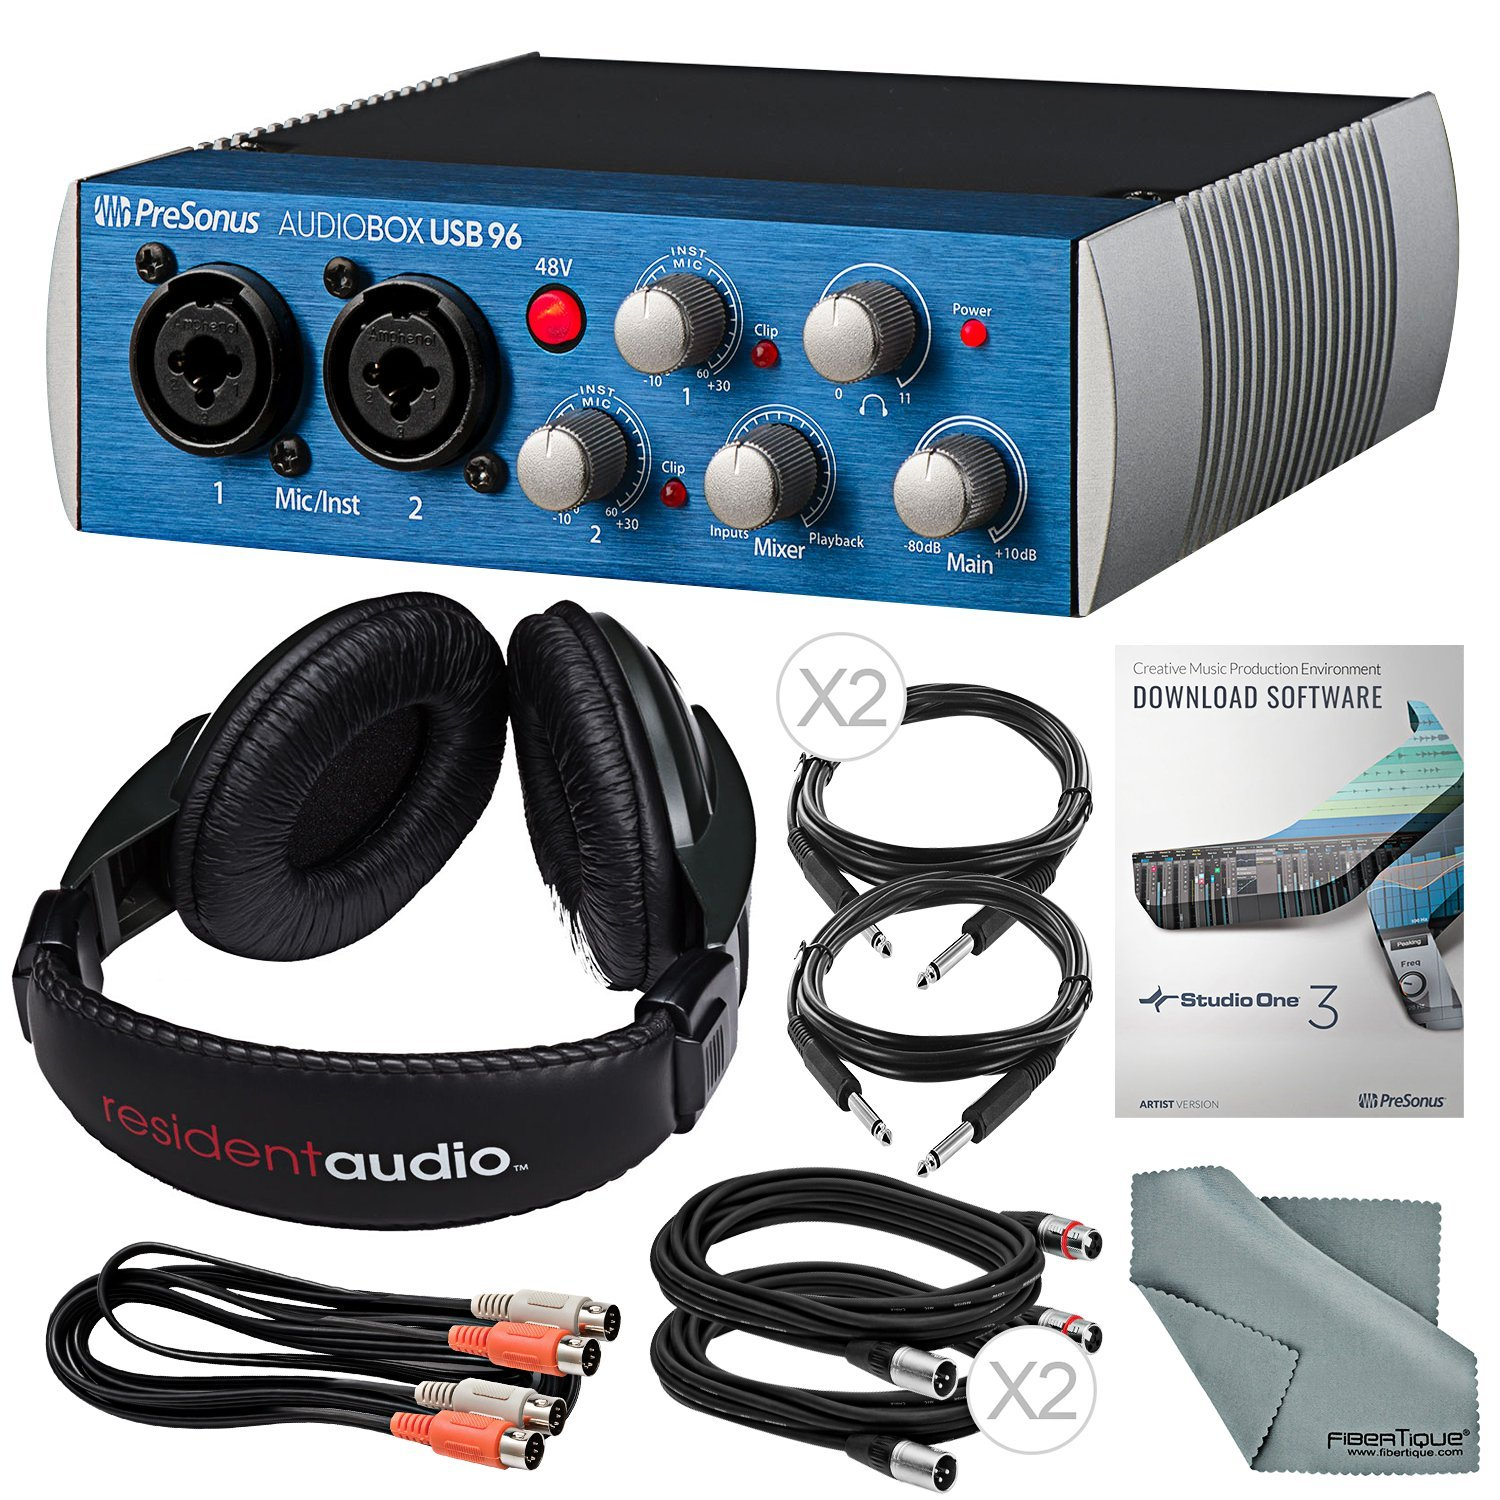 PreSonus AudioBox 96 USB 2.0 Audio Recording Interface and Accessory Bundle w/Stereo Headphones + Xpix Cable + Dual MIDI Cable + Fibertiqe